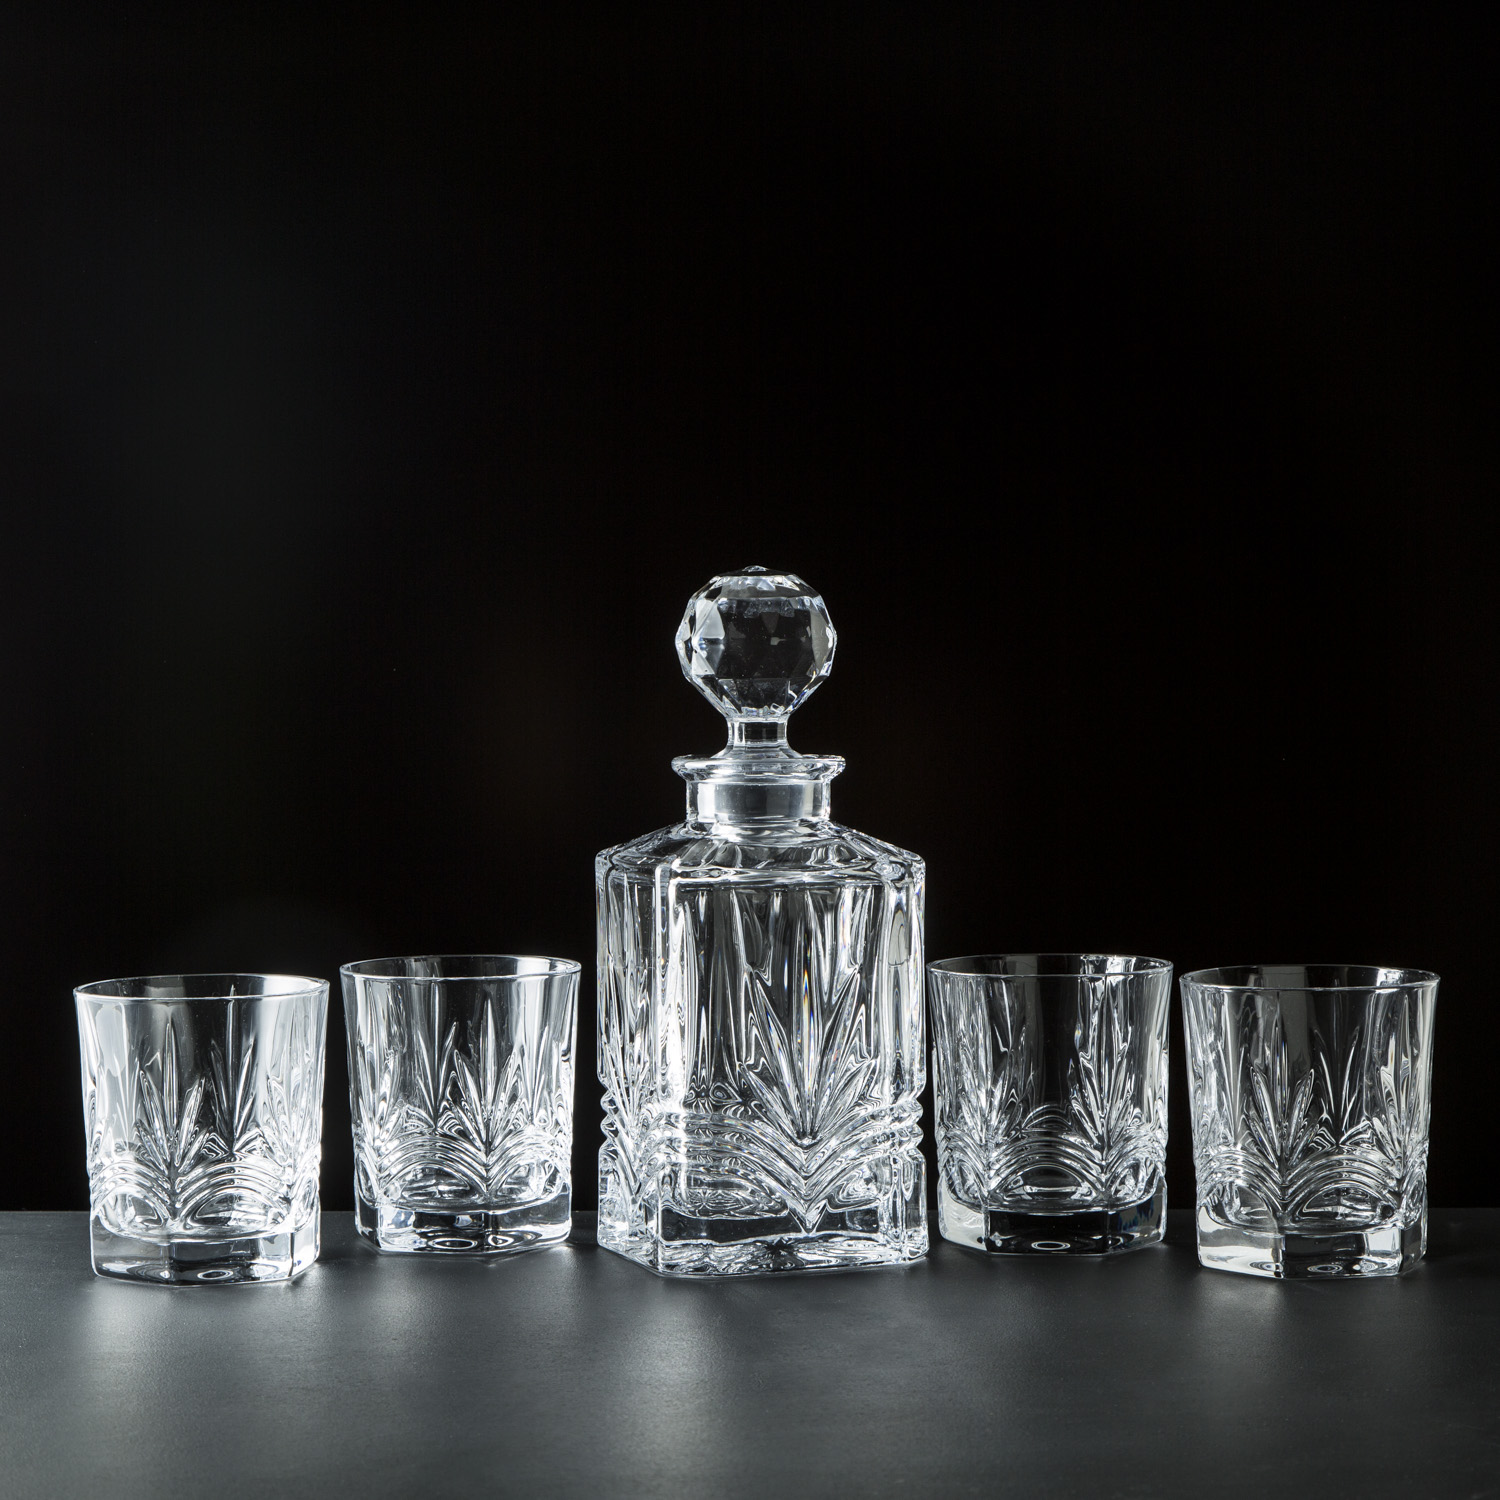 Kells decanter gift set